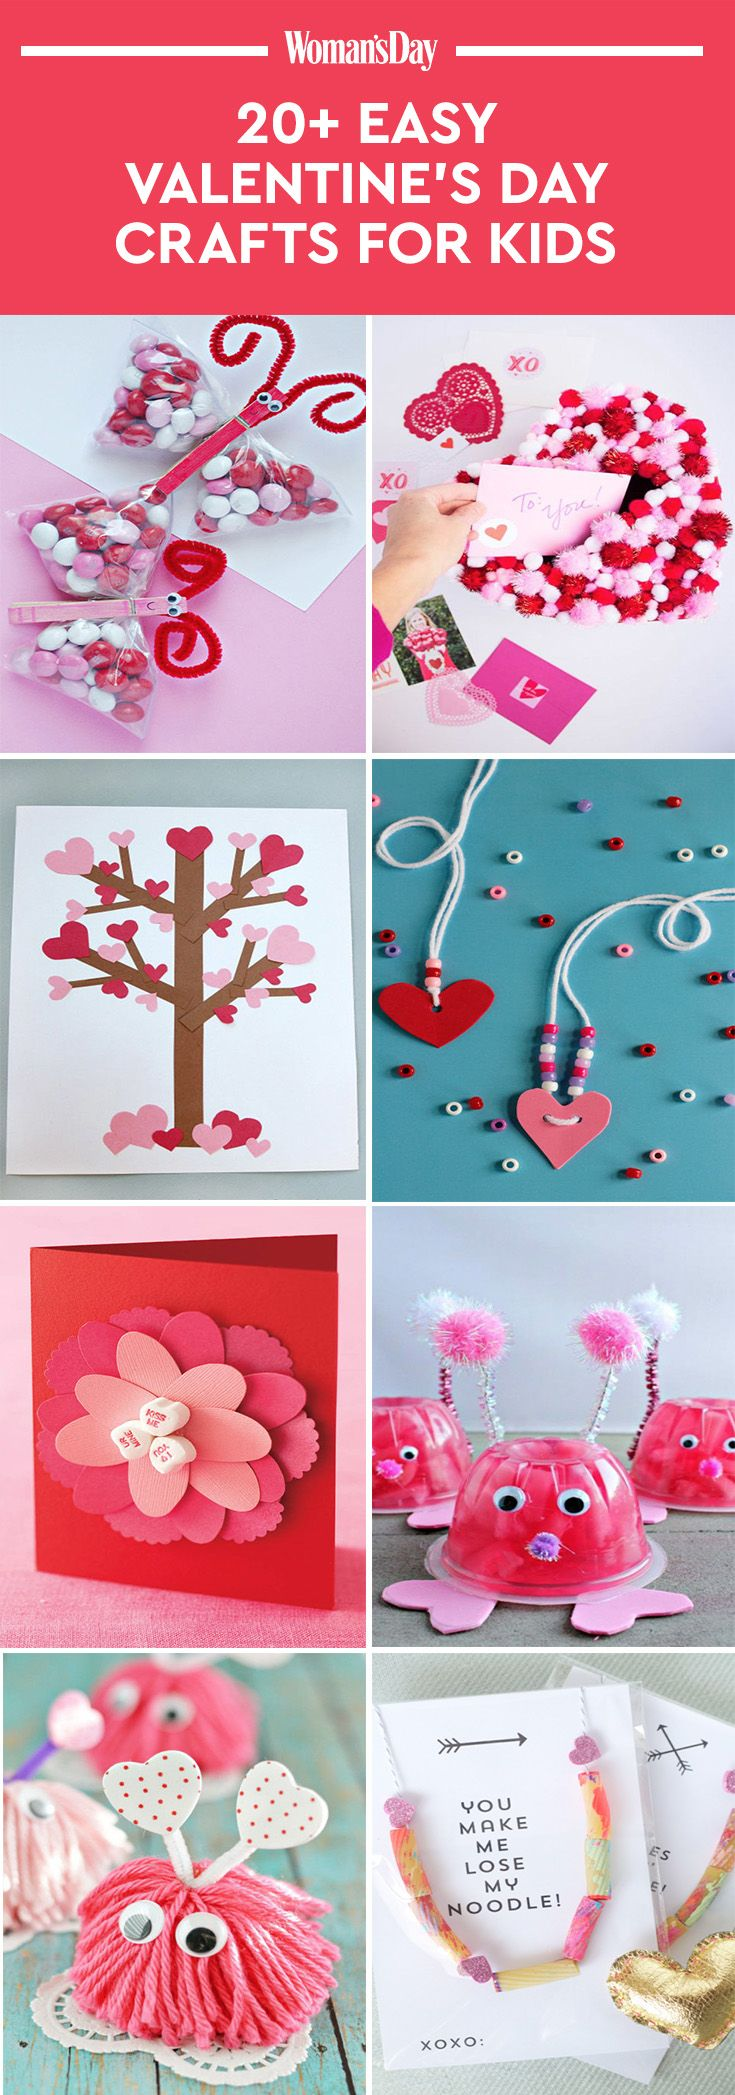 28 Valentine S Day Crafts For Kids Fun Heart Arts And Crafts